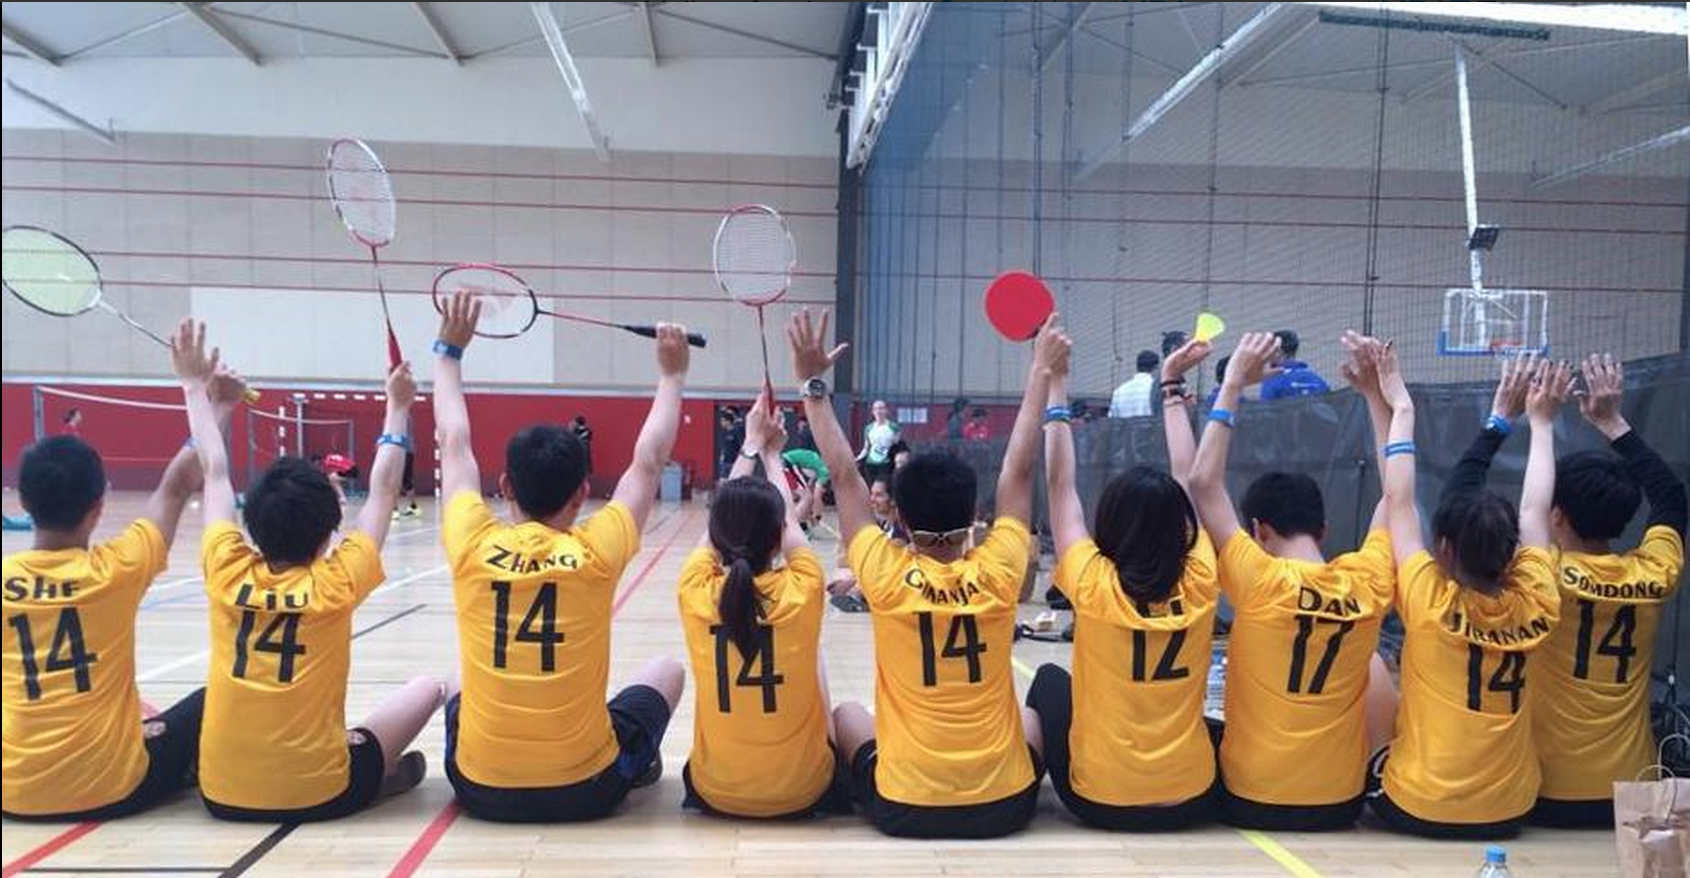 #11.  Yellow for the win! Cambridge badminton team: success at MBAT.  (via  @CambridgeMBA )